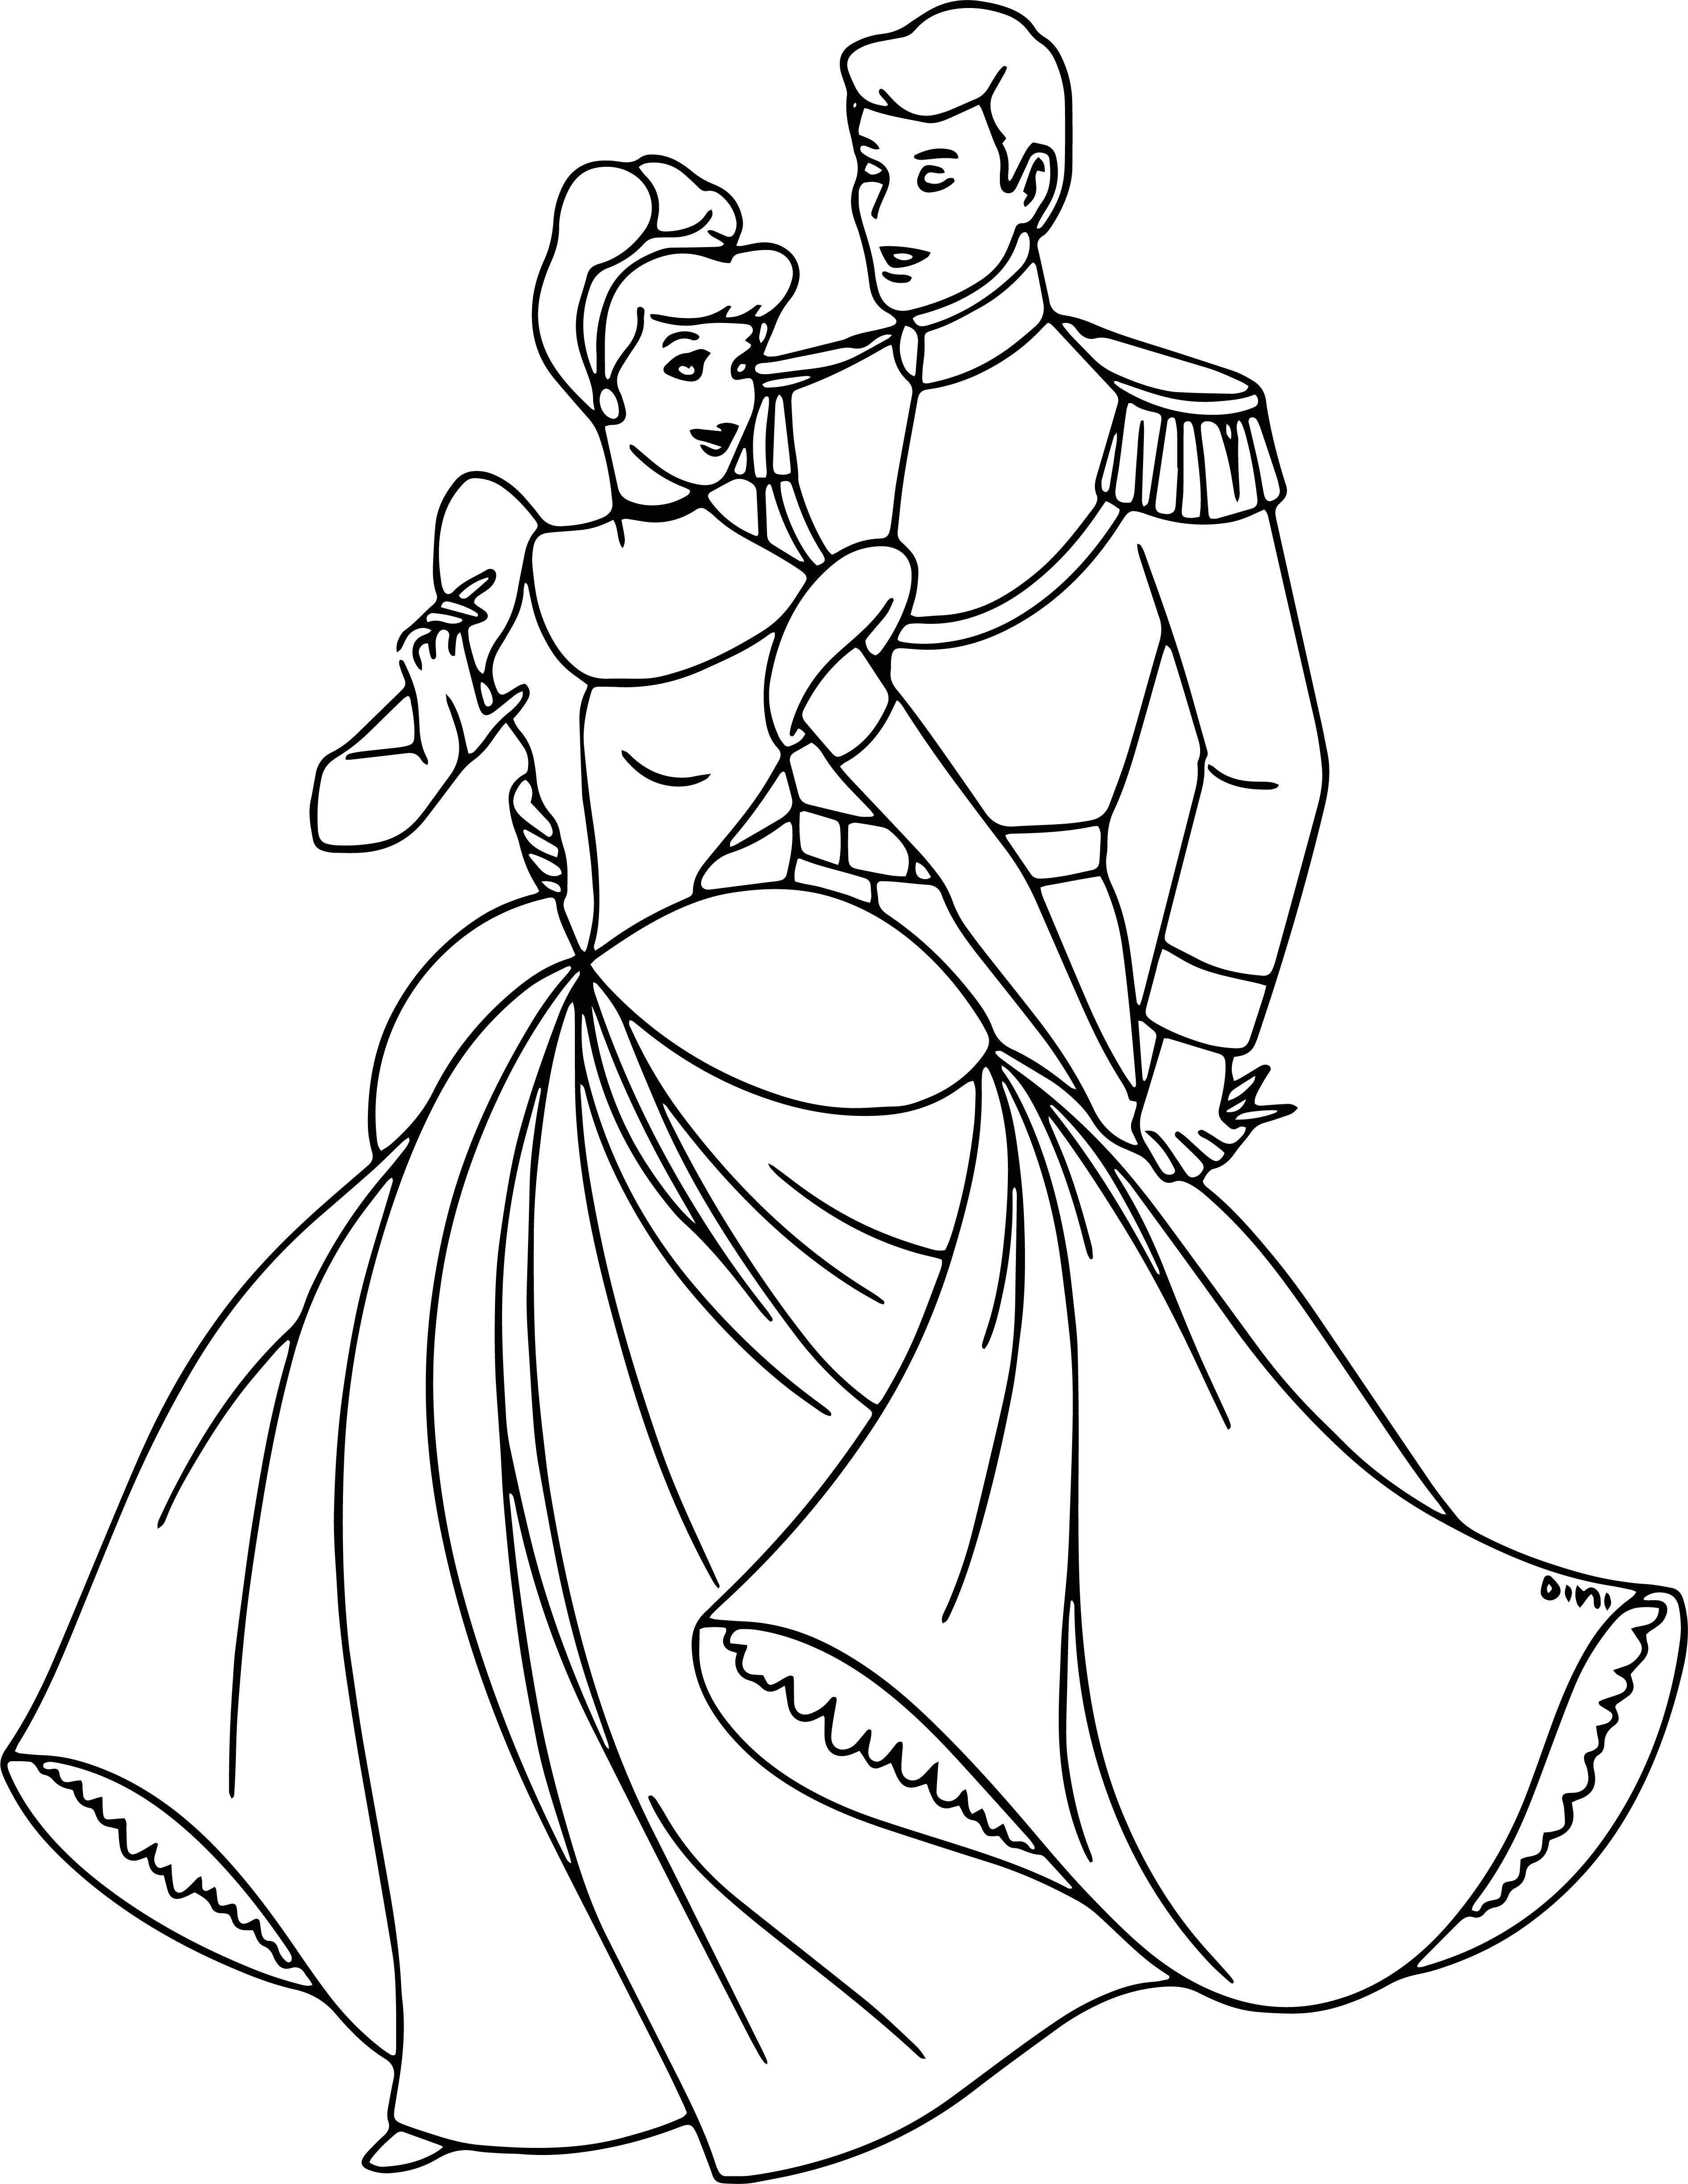 cinderella and prince charming coloring pages - Master Coloring Pages